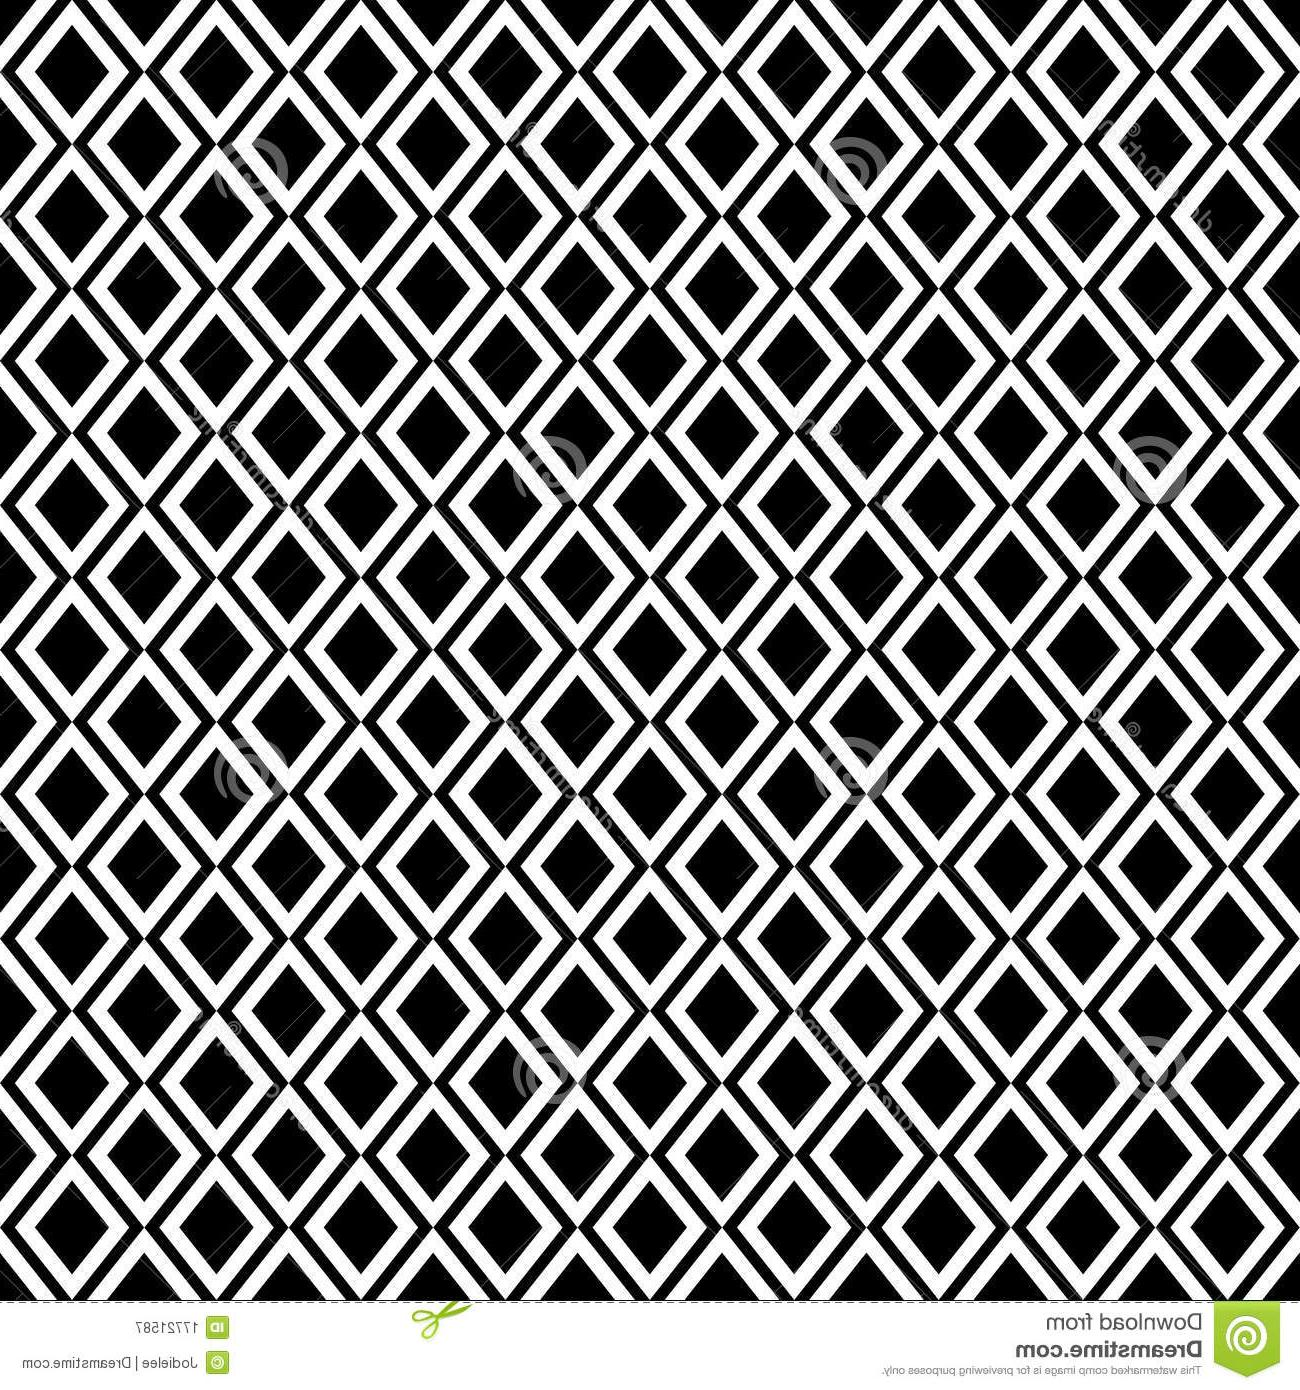 1300x1390 Hd Repeating Tile Patterns Vector Drawing Free Vector Art